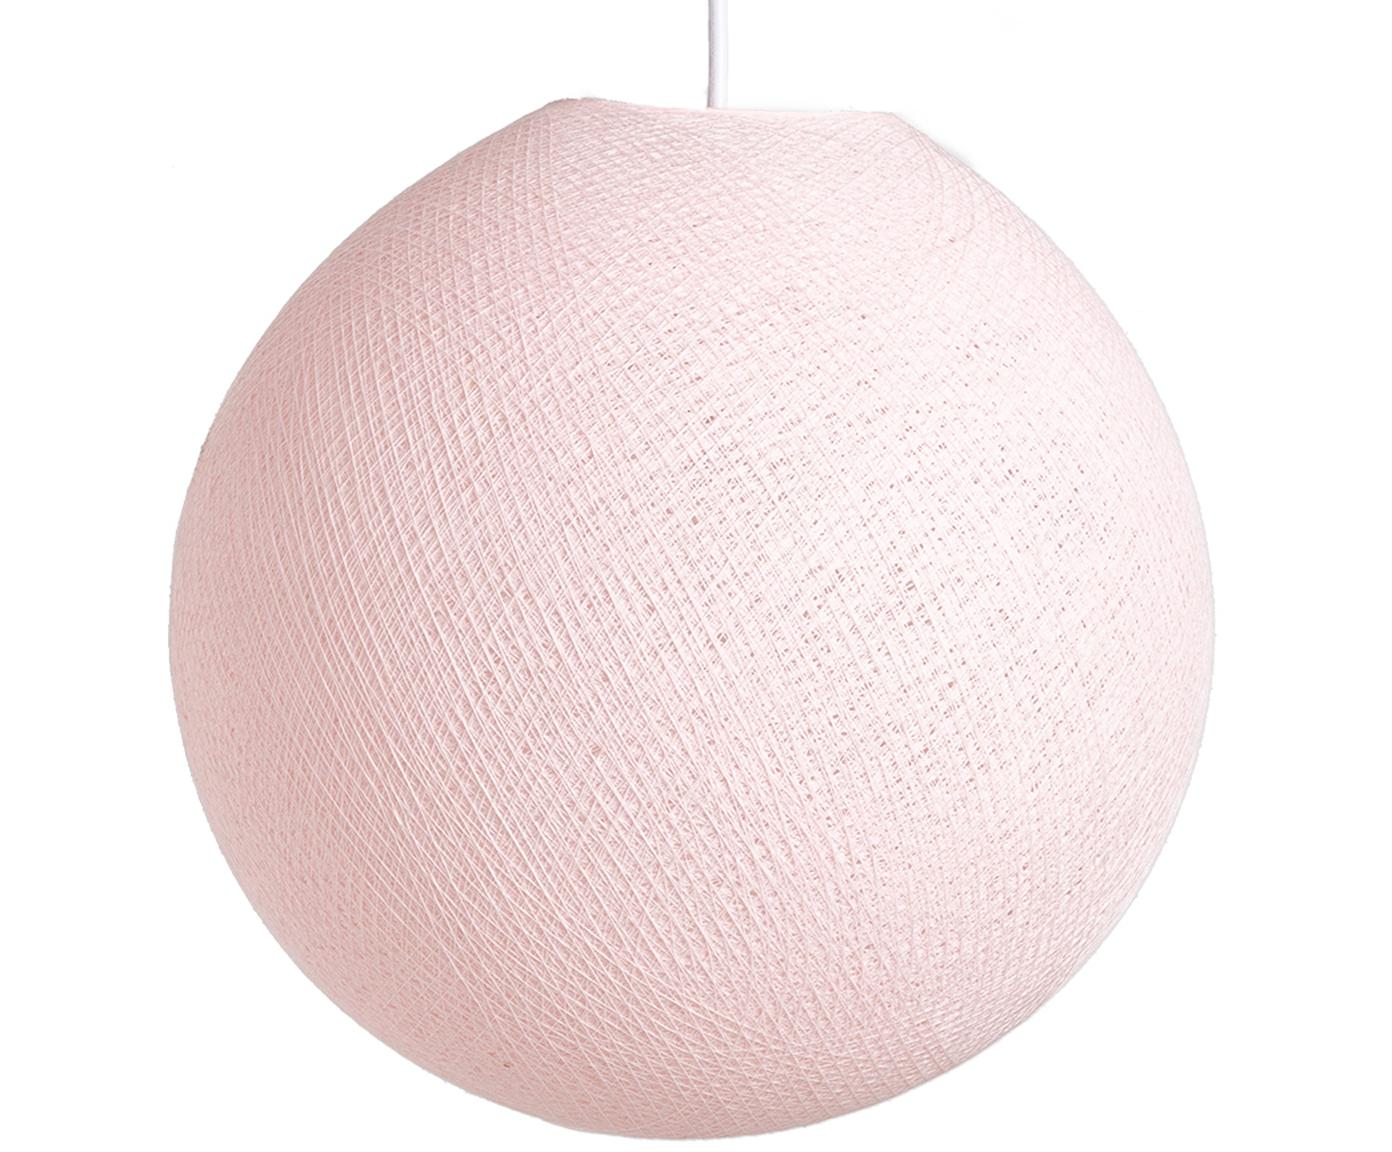 Hanglamp Colorain, Lampions: polyester, Licht roze, Ø 31 x H 135 cm